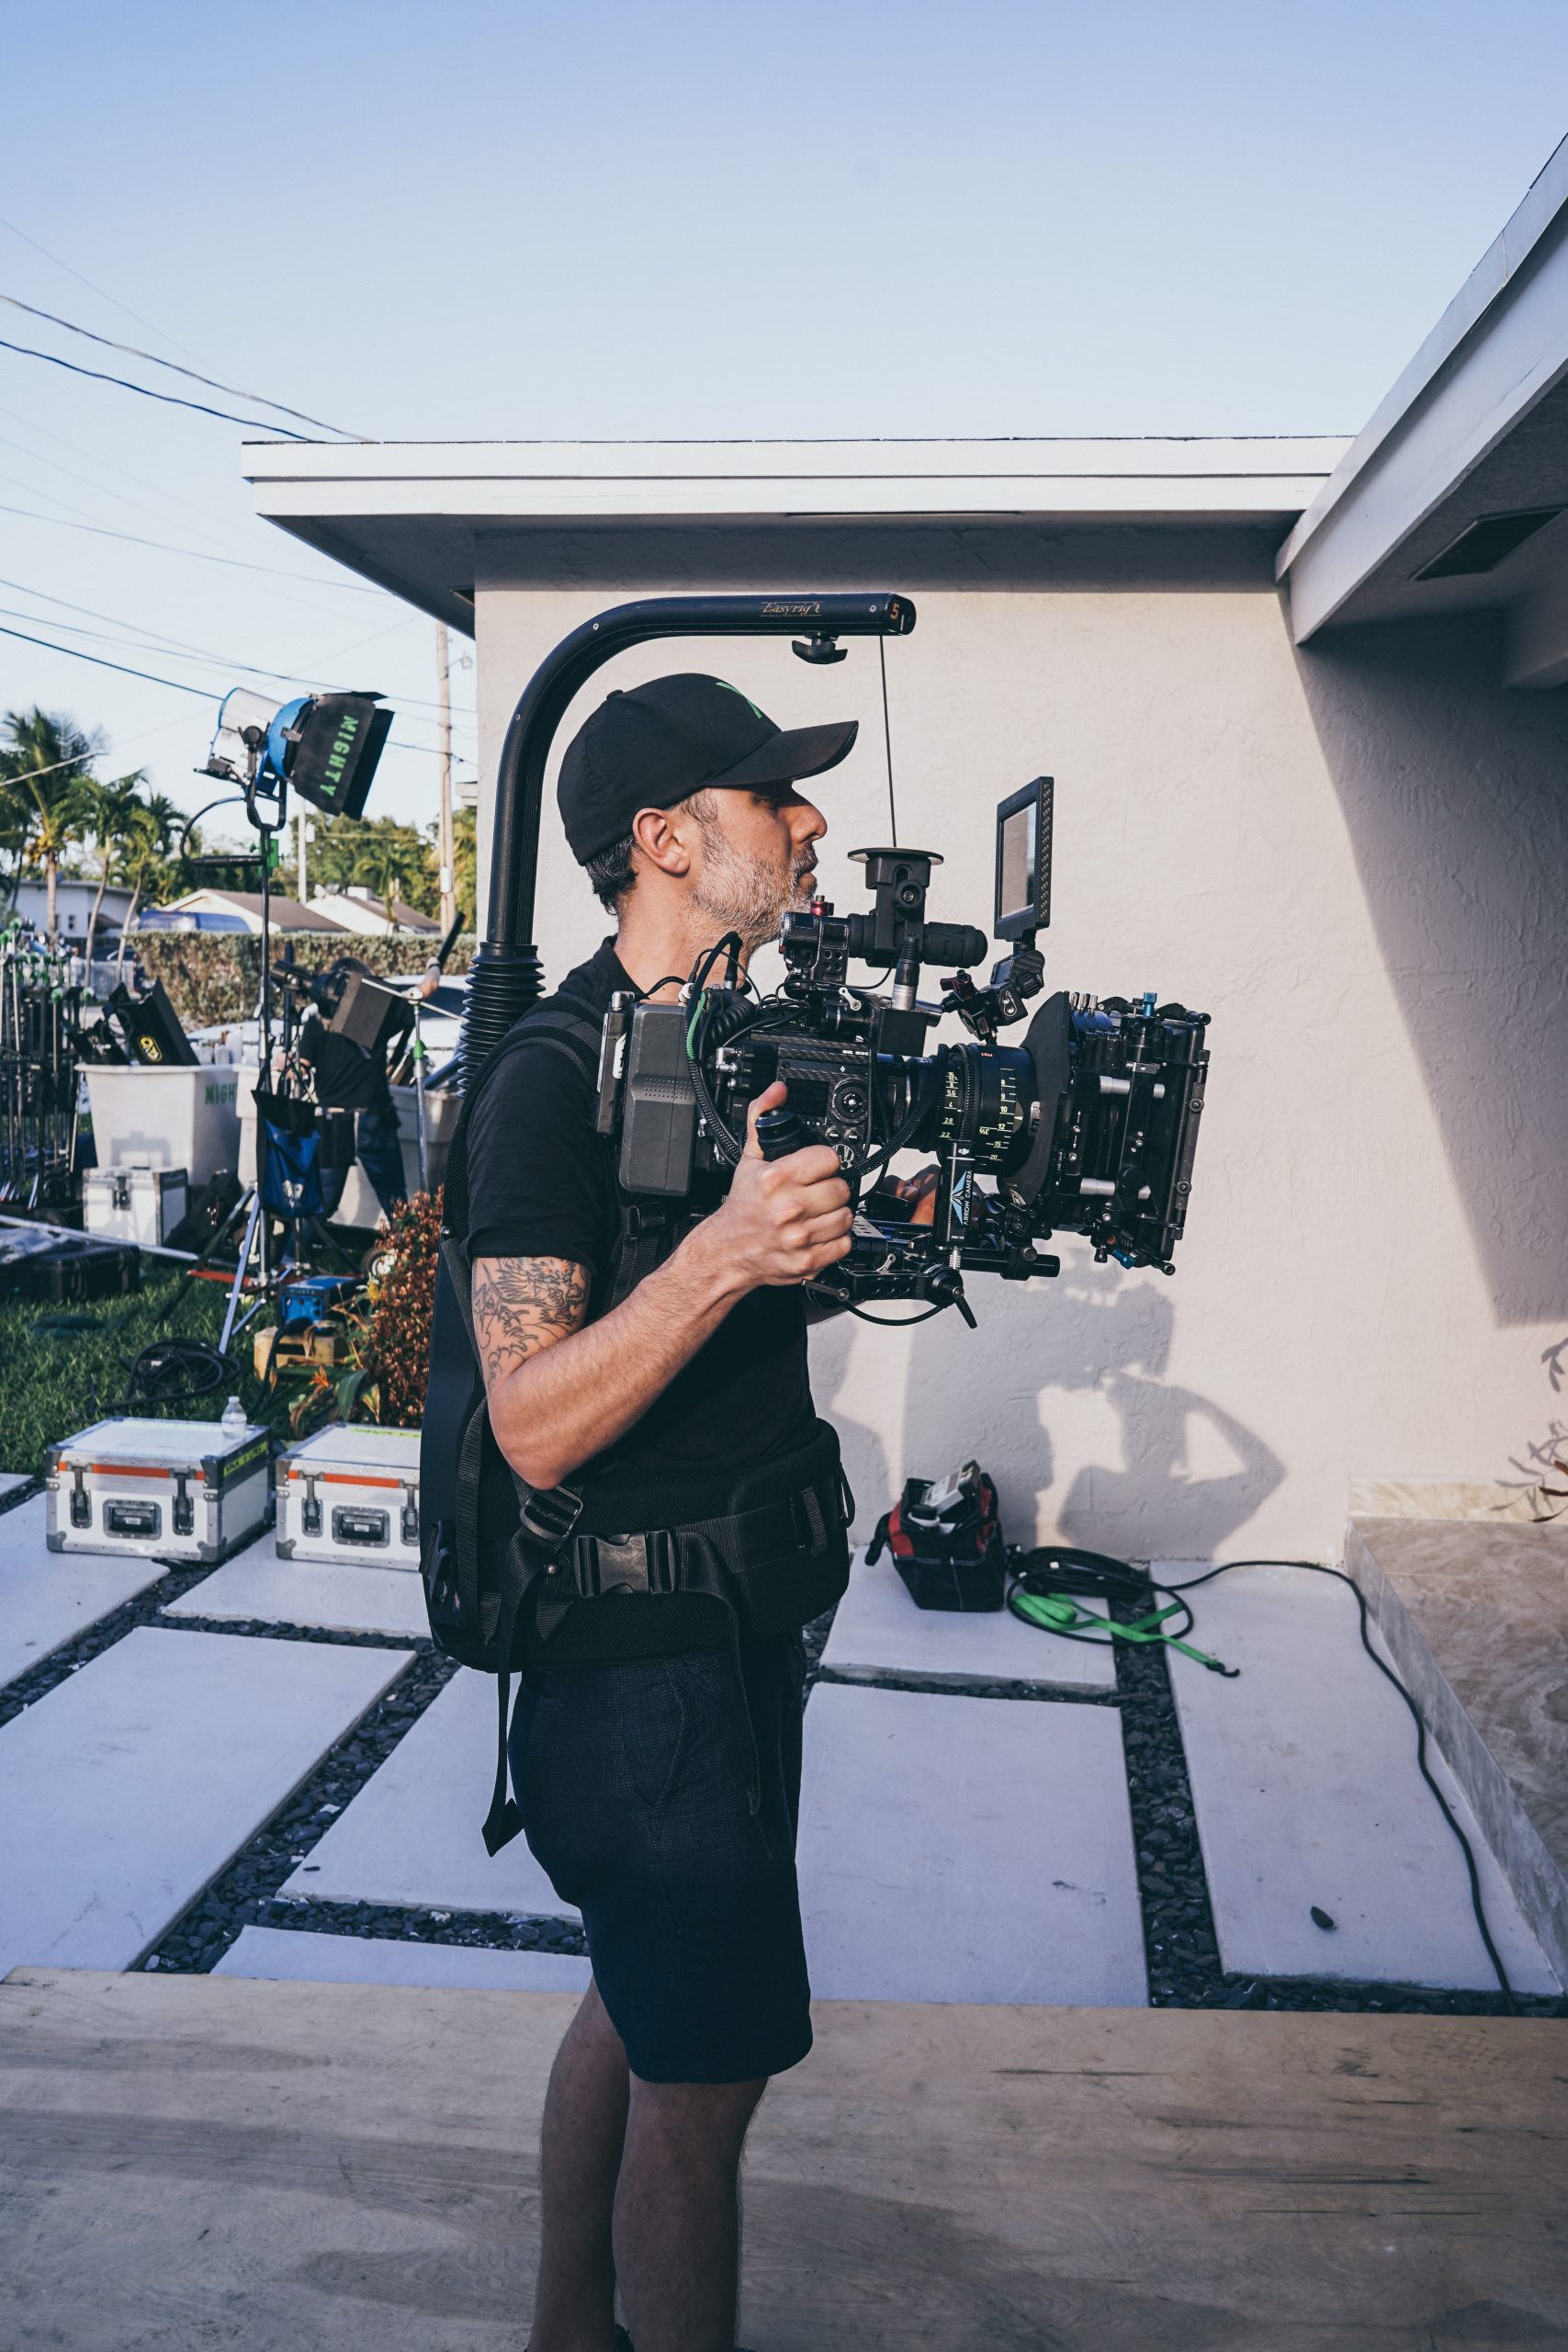 Ricardo Manavello - Brady - New Morning Routine - Artex Productions - Miami's Best Commercial Video Production Company